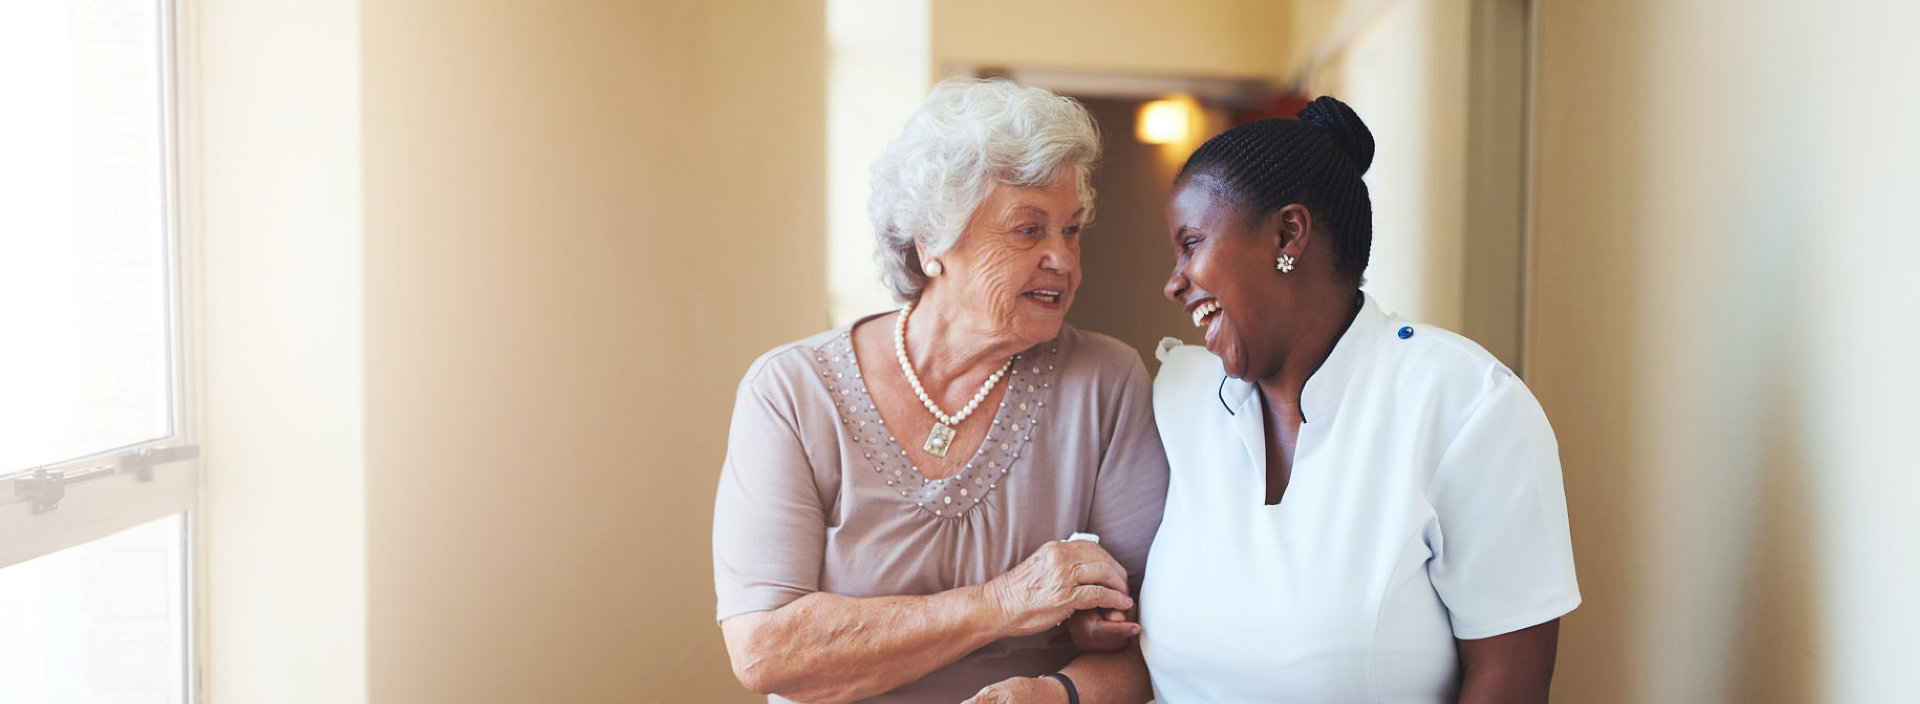 a senior woman and a caregiver smiling at each other